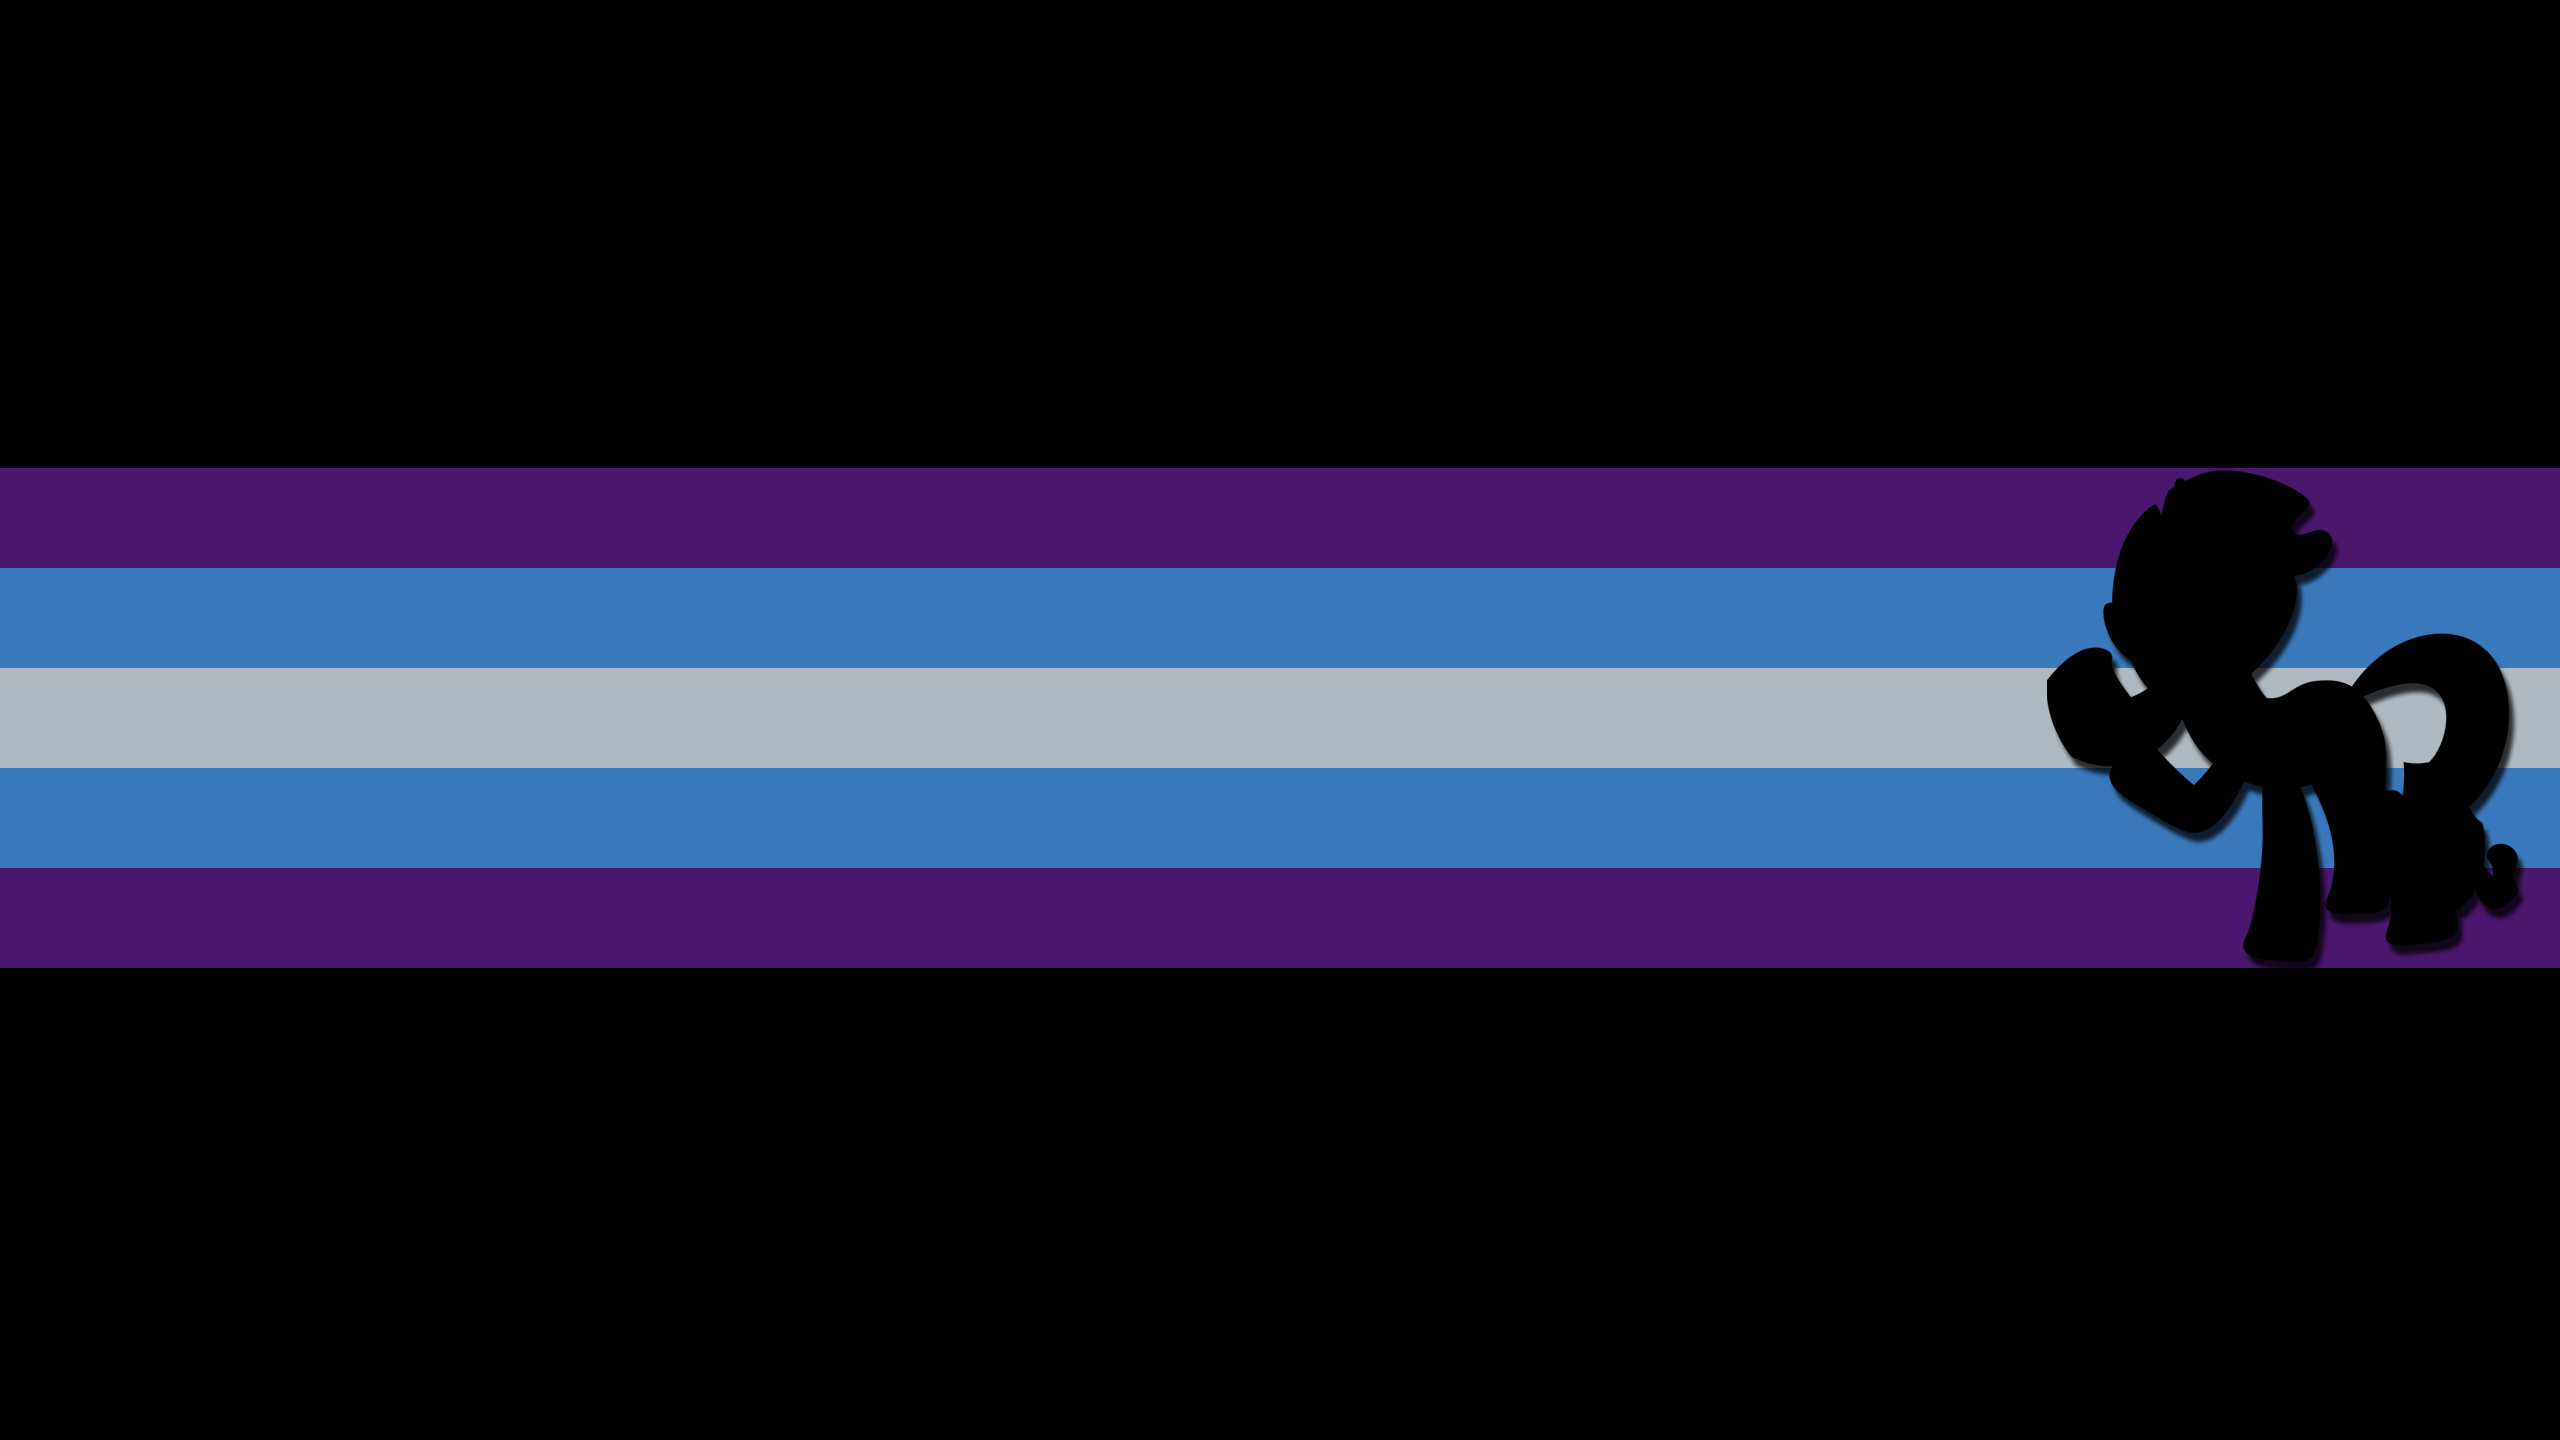 [13] Rarity: Colored Stripes by DoktorRainbowFridge and Quanno3